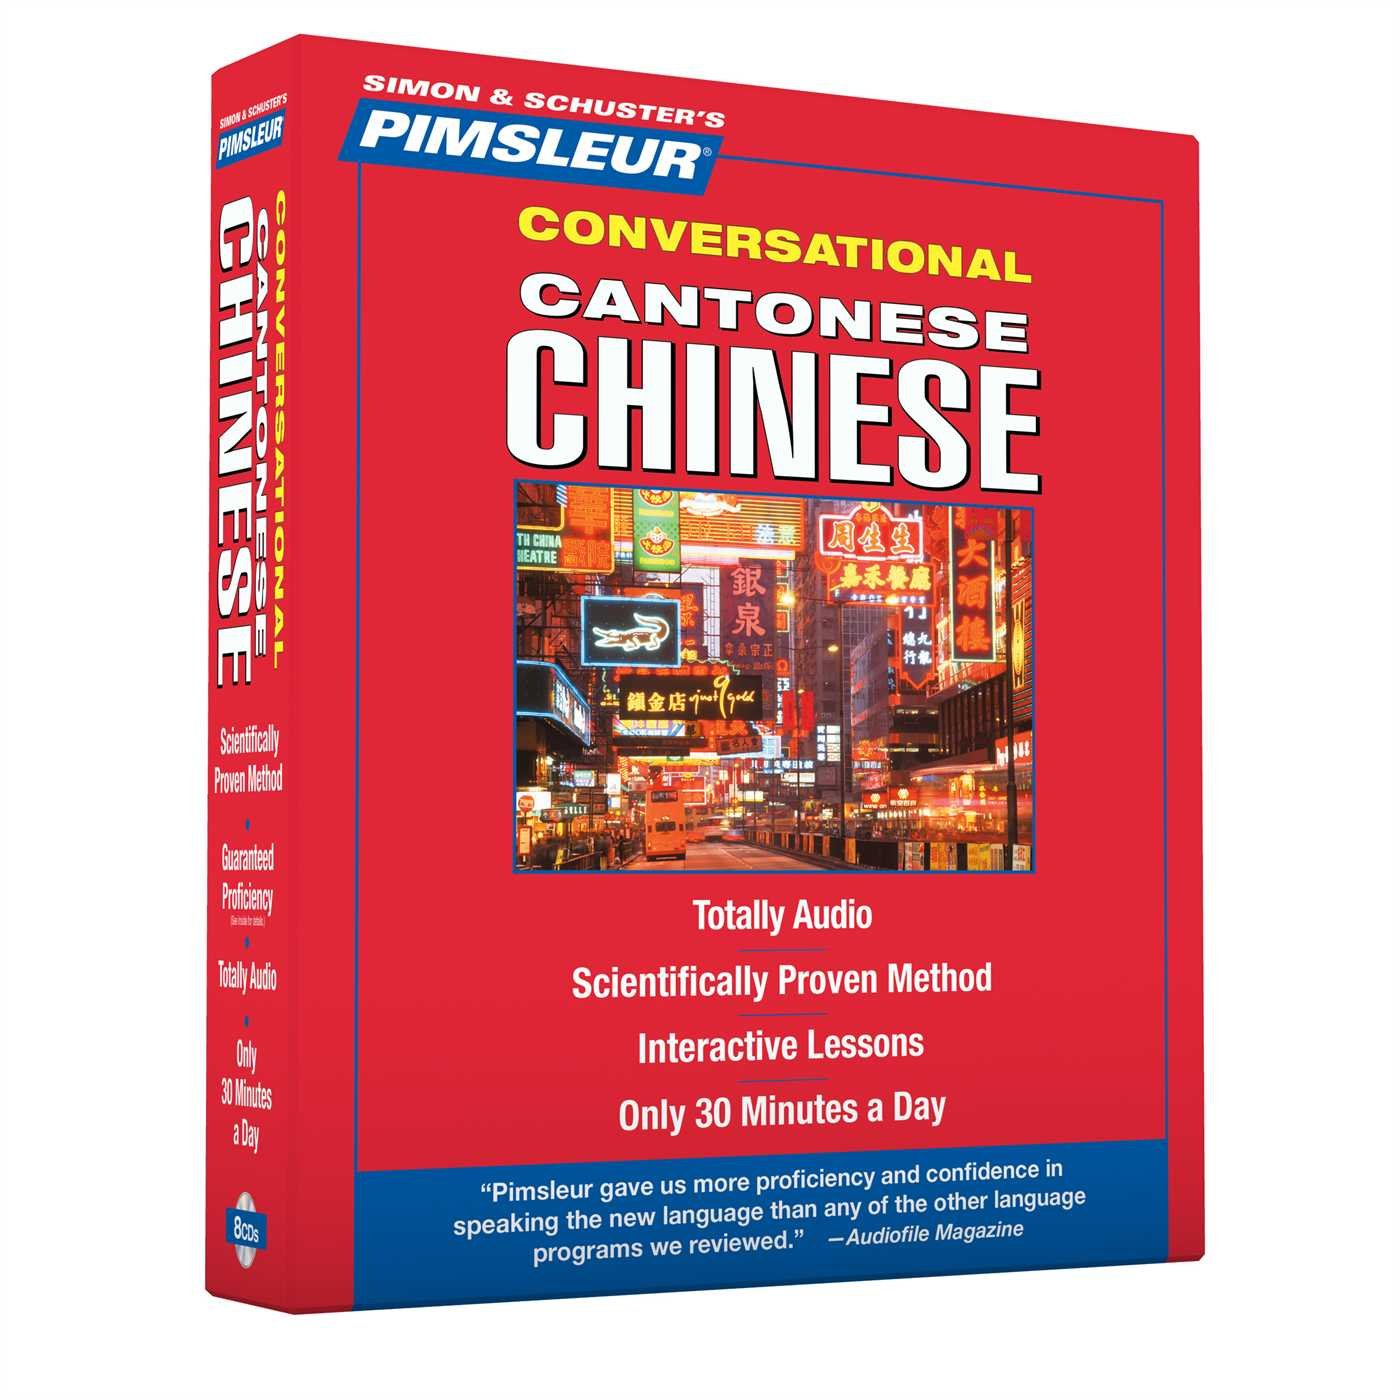 Pimsleur Chinese (Cantonese) Conversational Course - Level 1 Lessons 1-16 CD: Learn to Speak and Understand Cantonese Chinese with Pimsleur Language Programs by Pimsleur